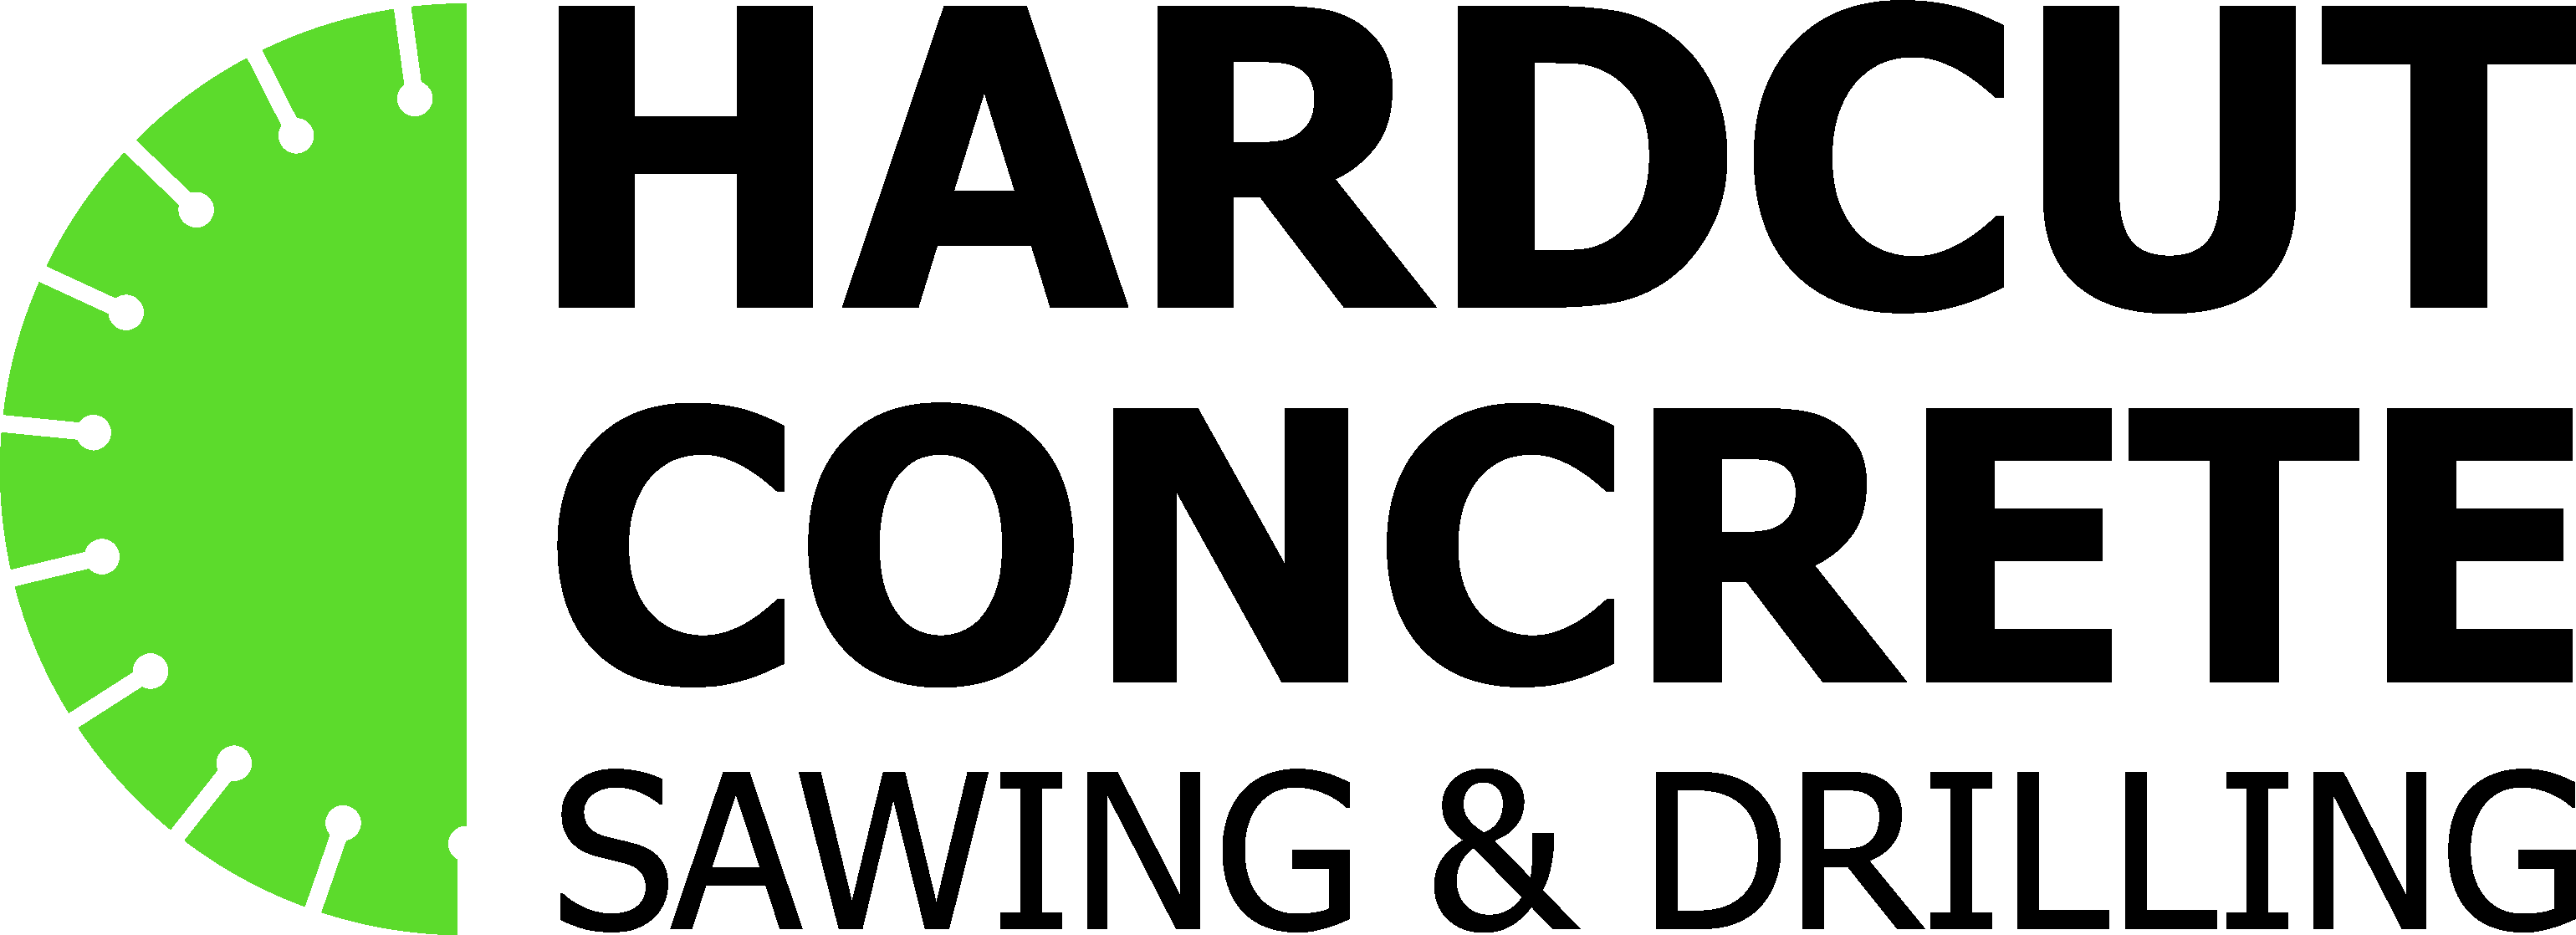 hardcut concrete sawing and drilling logo